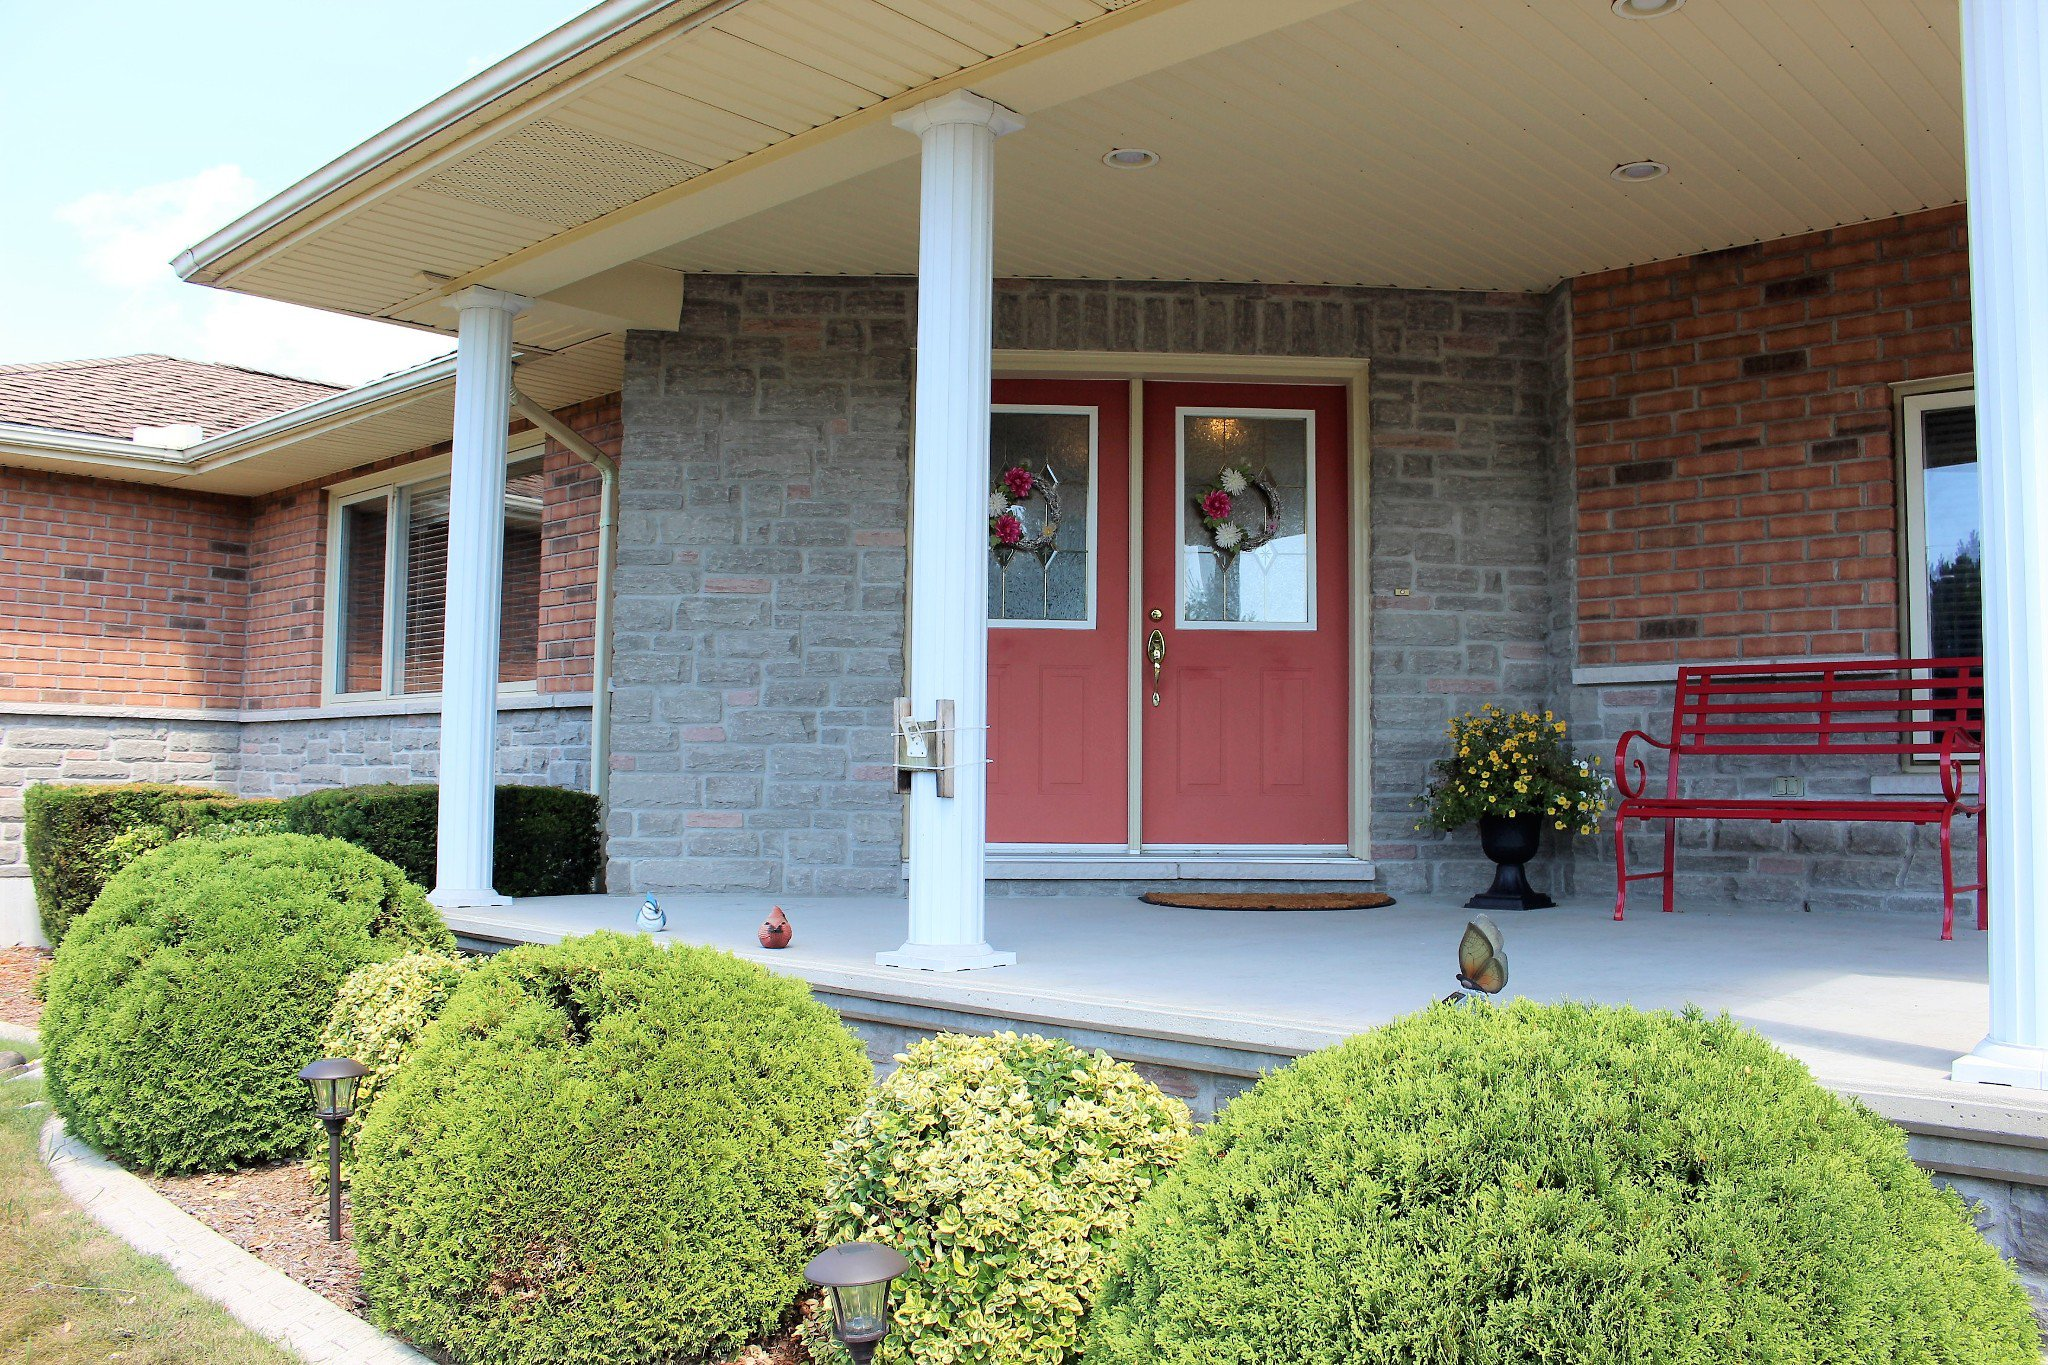 Photo 2: Photos: 159 Nawautin Drive in Grafton: Residential Detached for sale : MLS®# 40012652